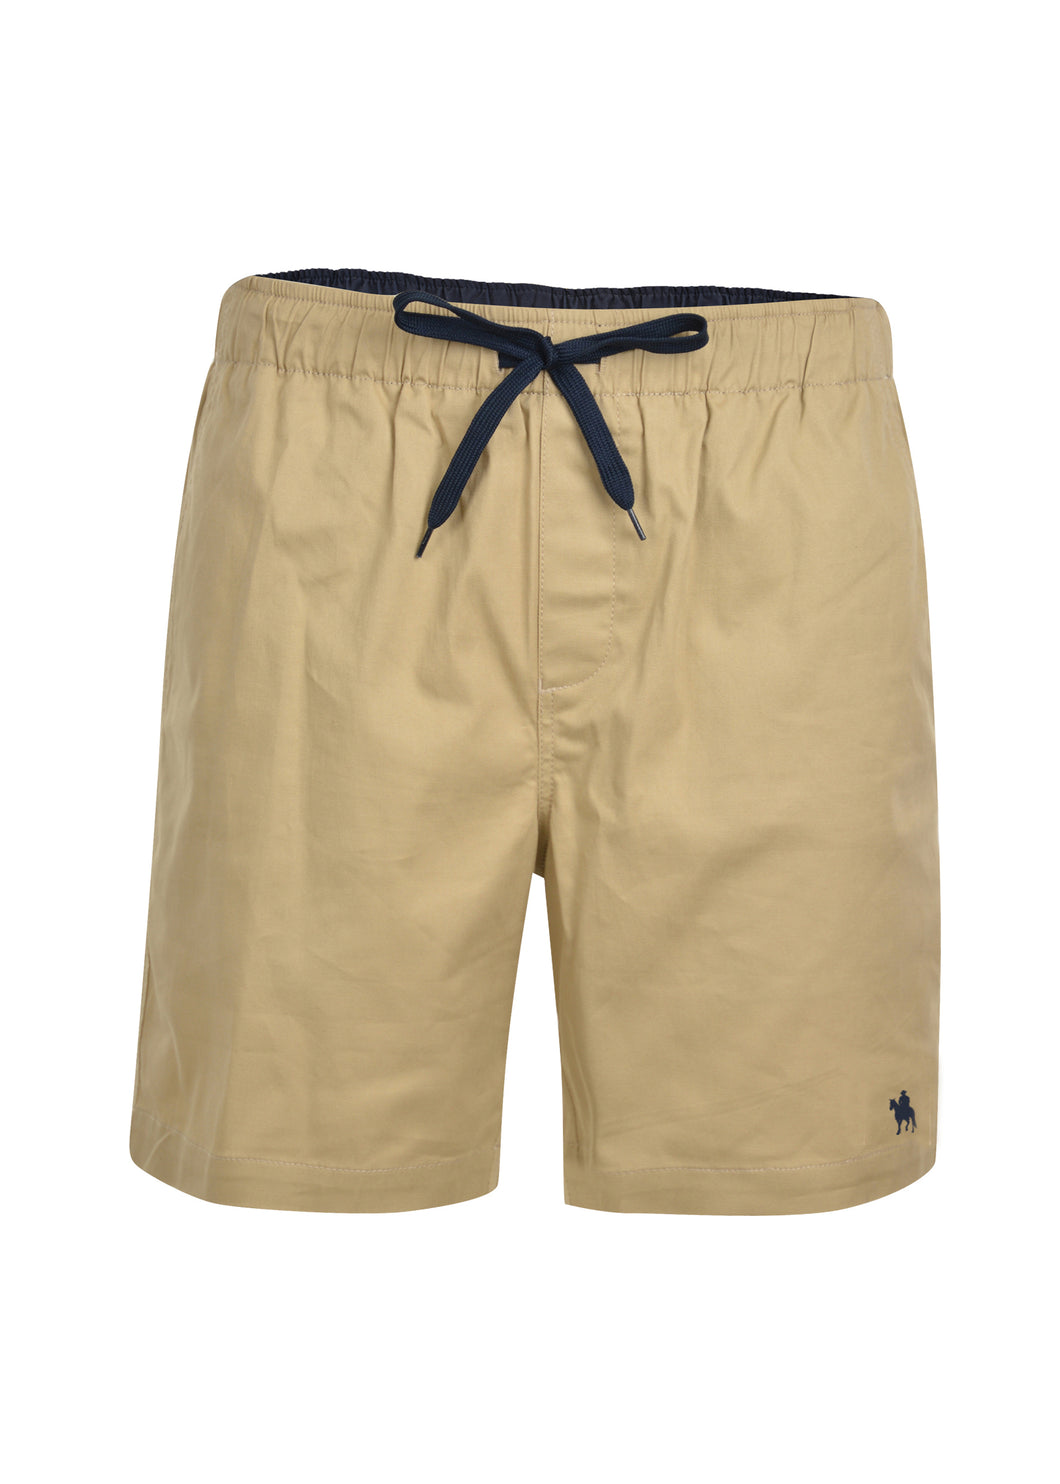 Thomas Cook Darcy Short Sand, from Harley & Rose